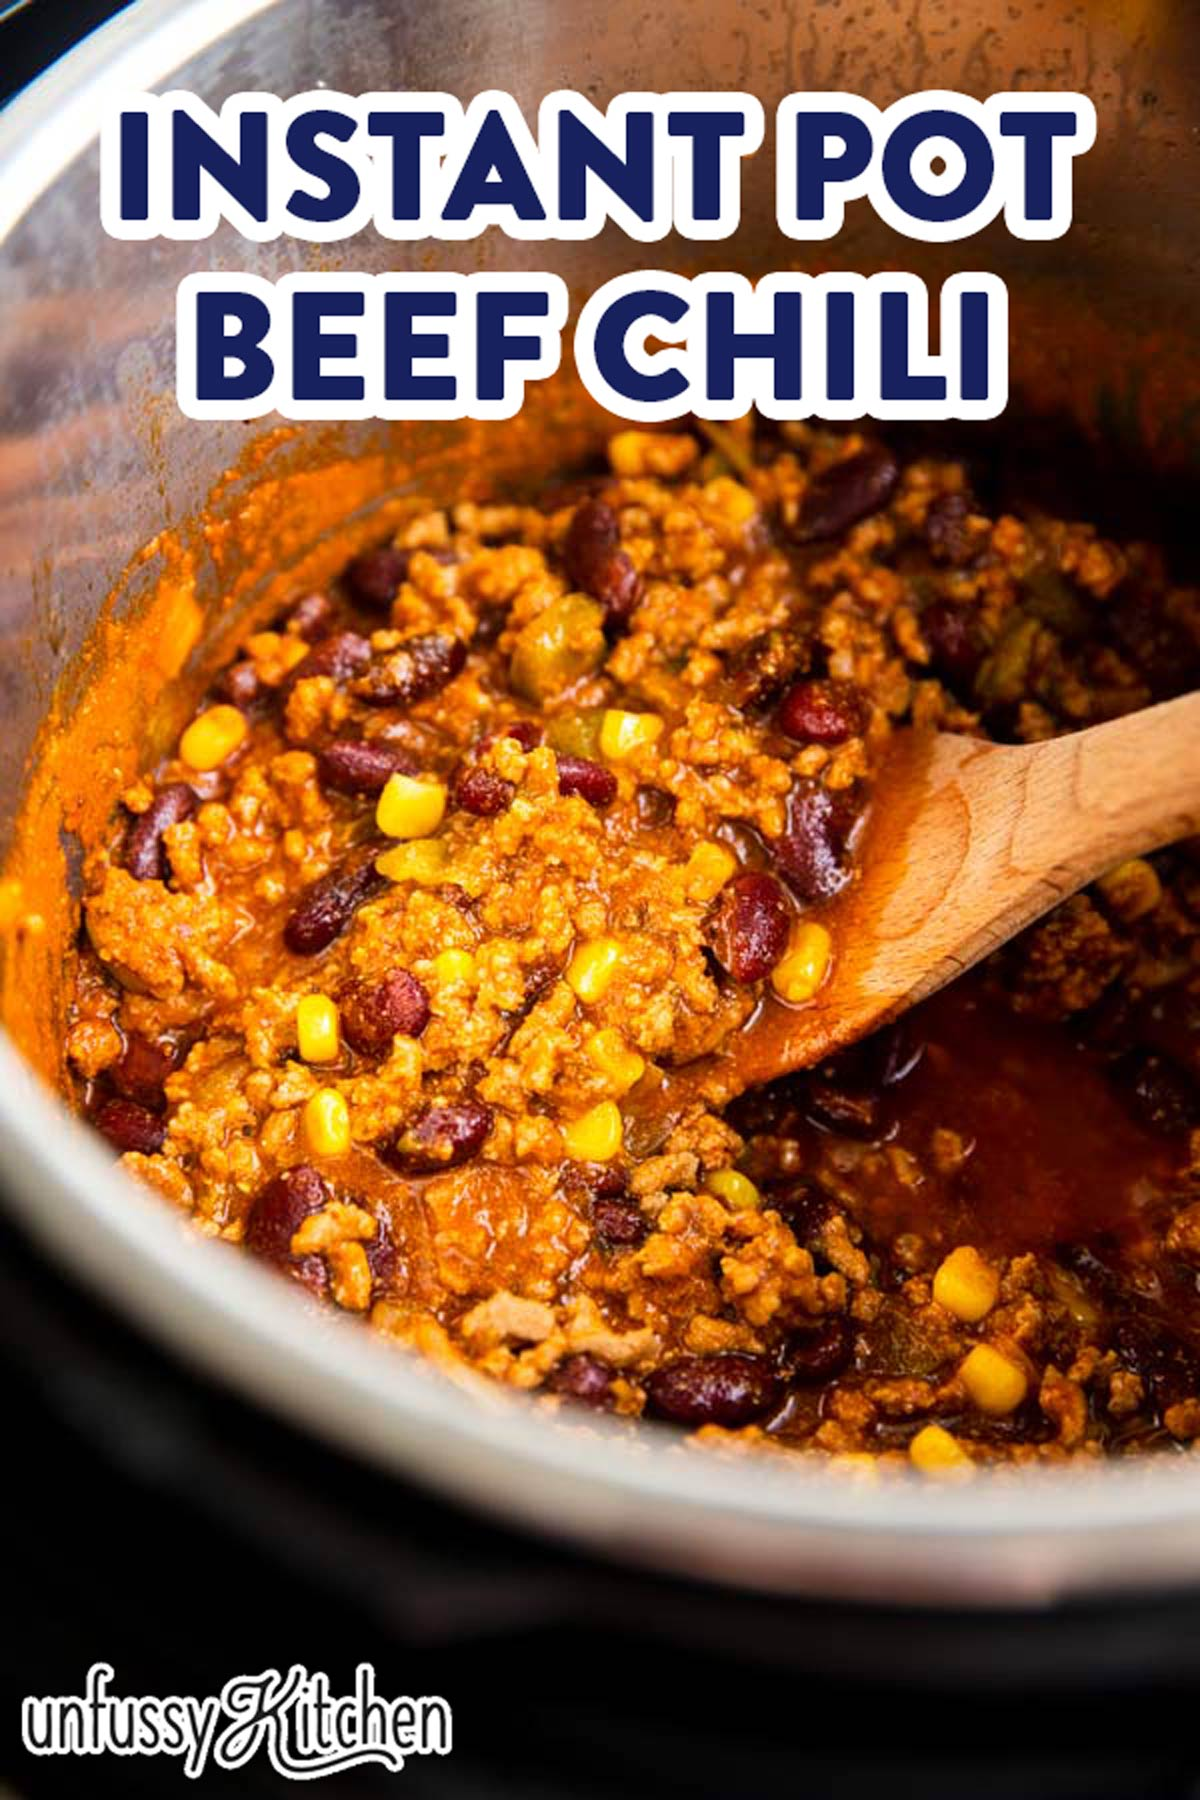 instant pot chili with text overlay